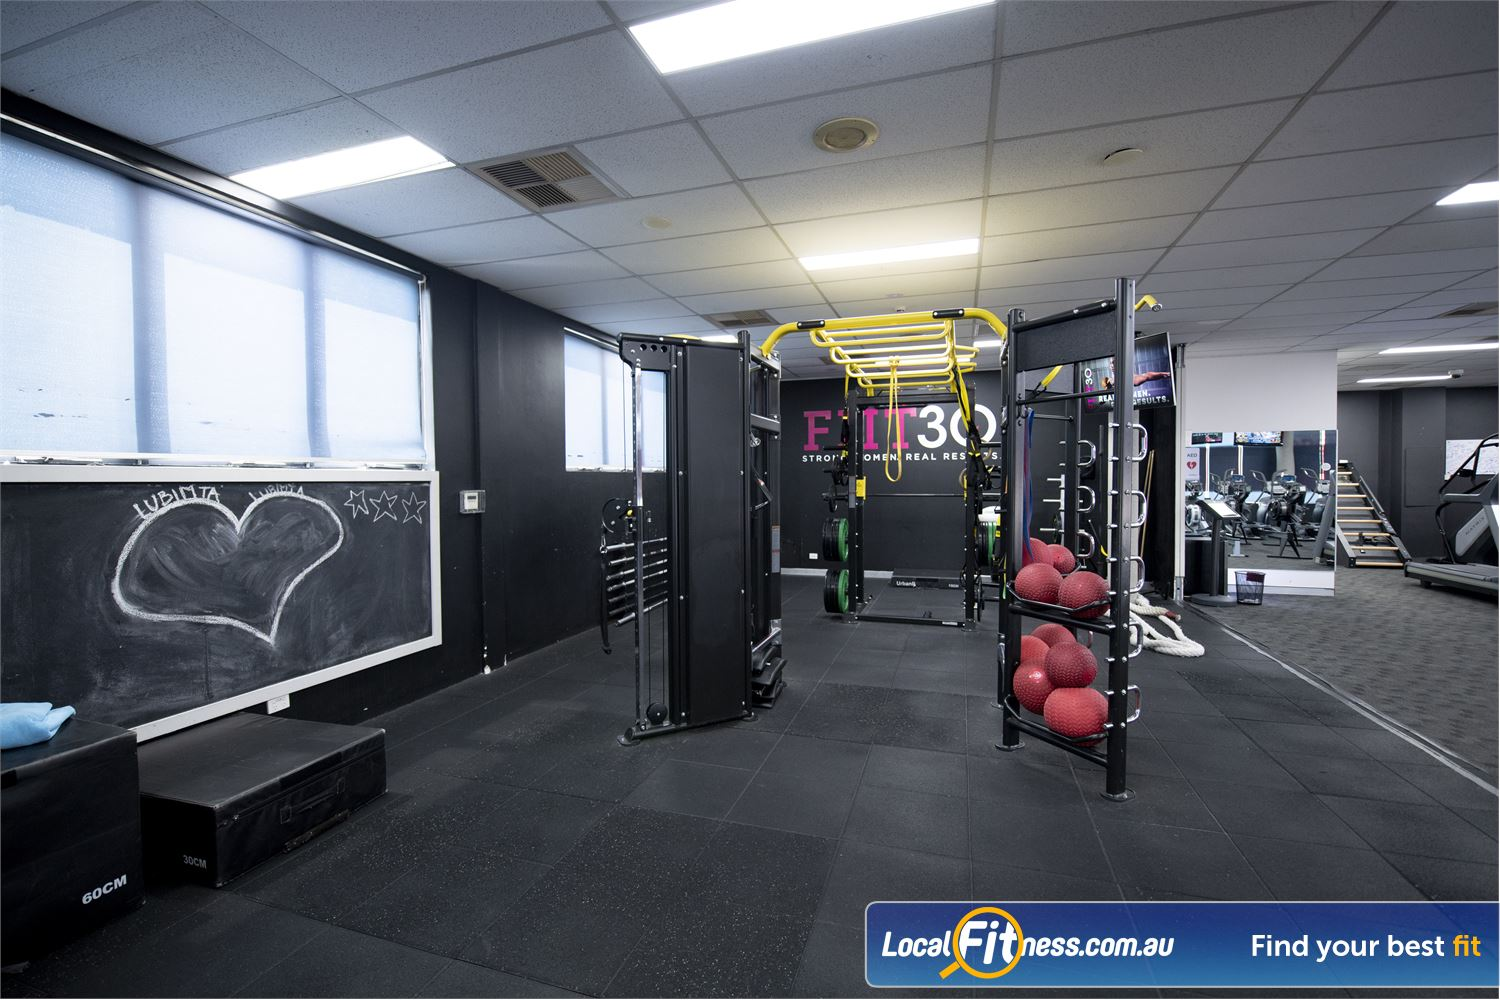 Fernwood Fitness Near Hurstville The dedicated functional training area with high performance strength system.